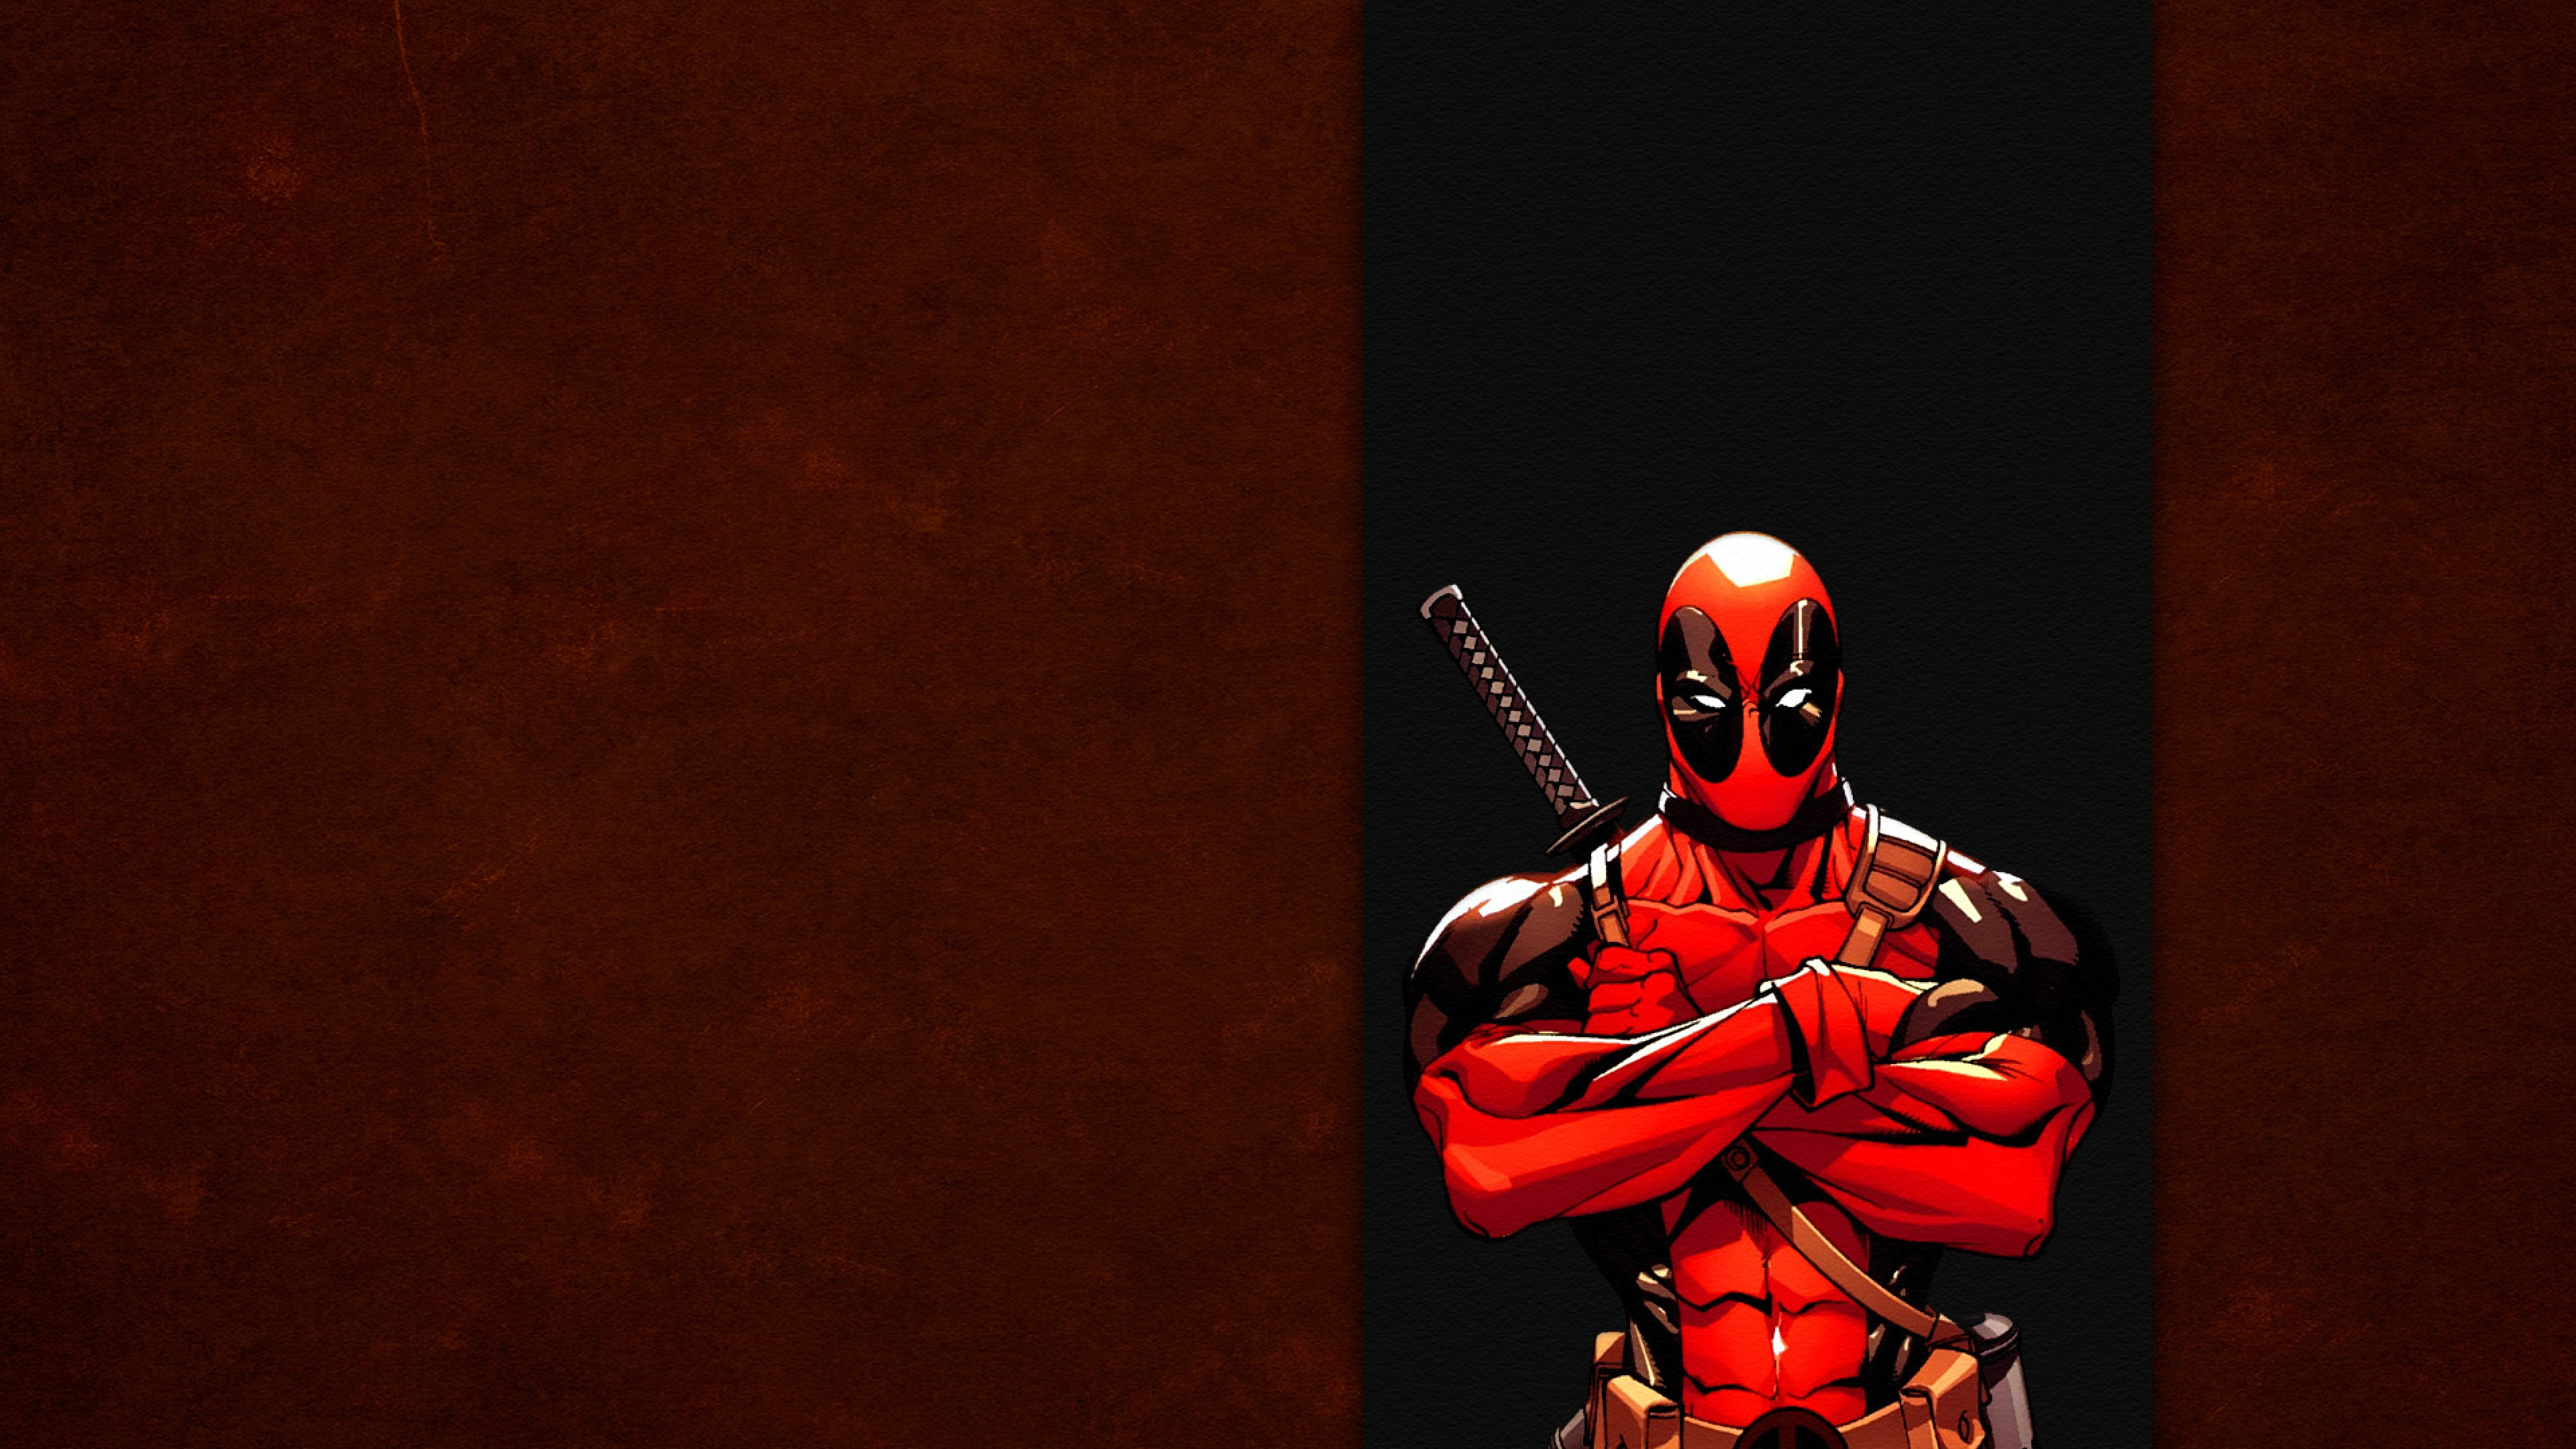 Red Wade wilson Marvel Band Wallpaper Background 4K Ultra HD 3840x2160